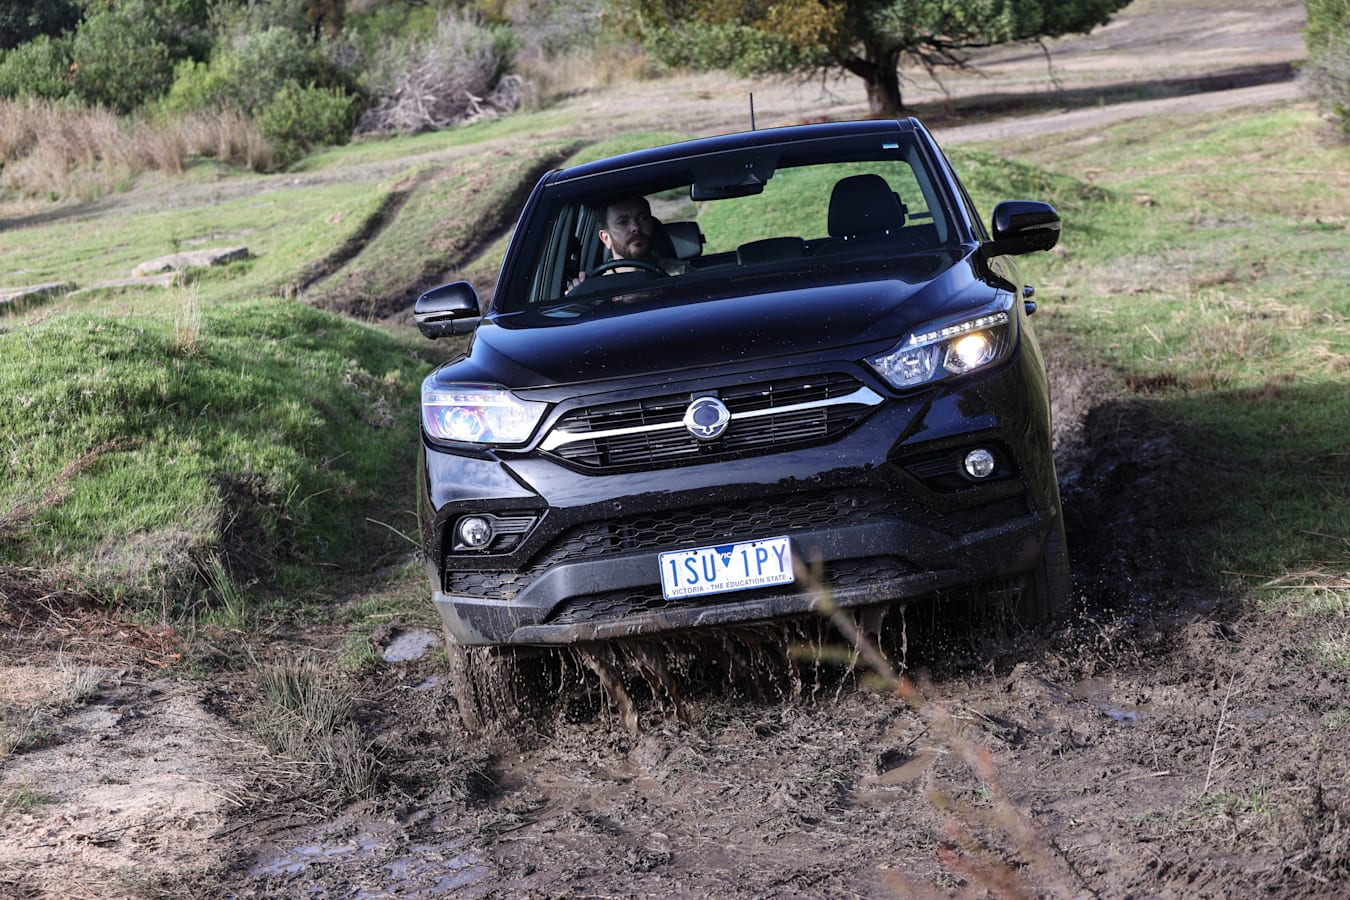 4 X 4 Australia Comparisons 2021 May 21 Ssang Yong Musso Unlimited XLV Off Road Test